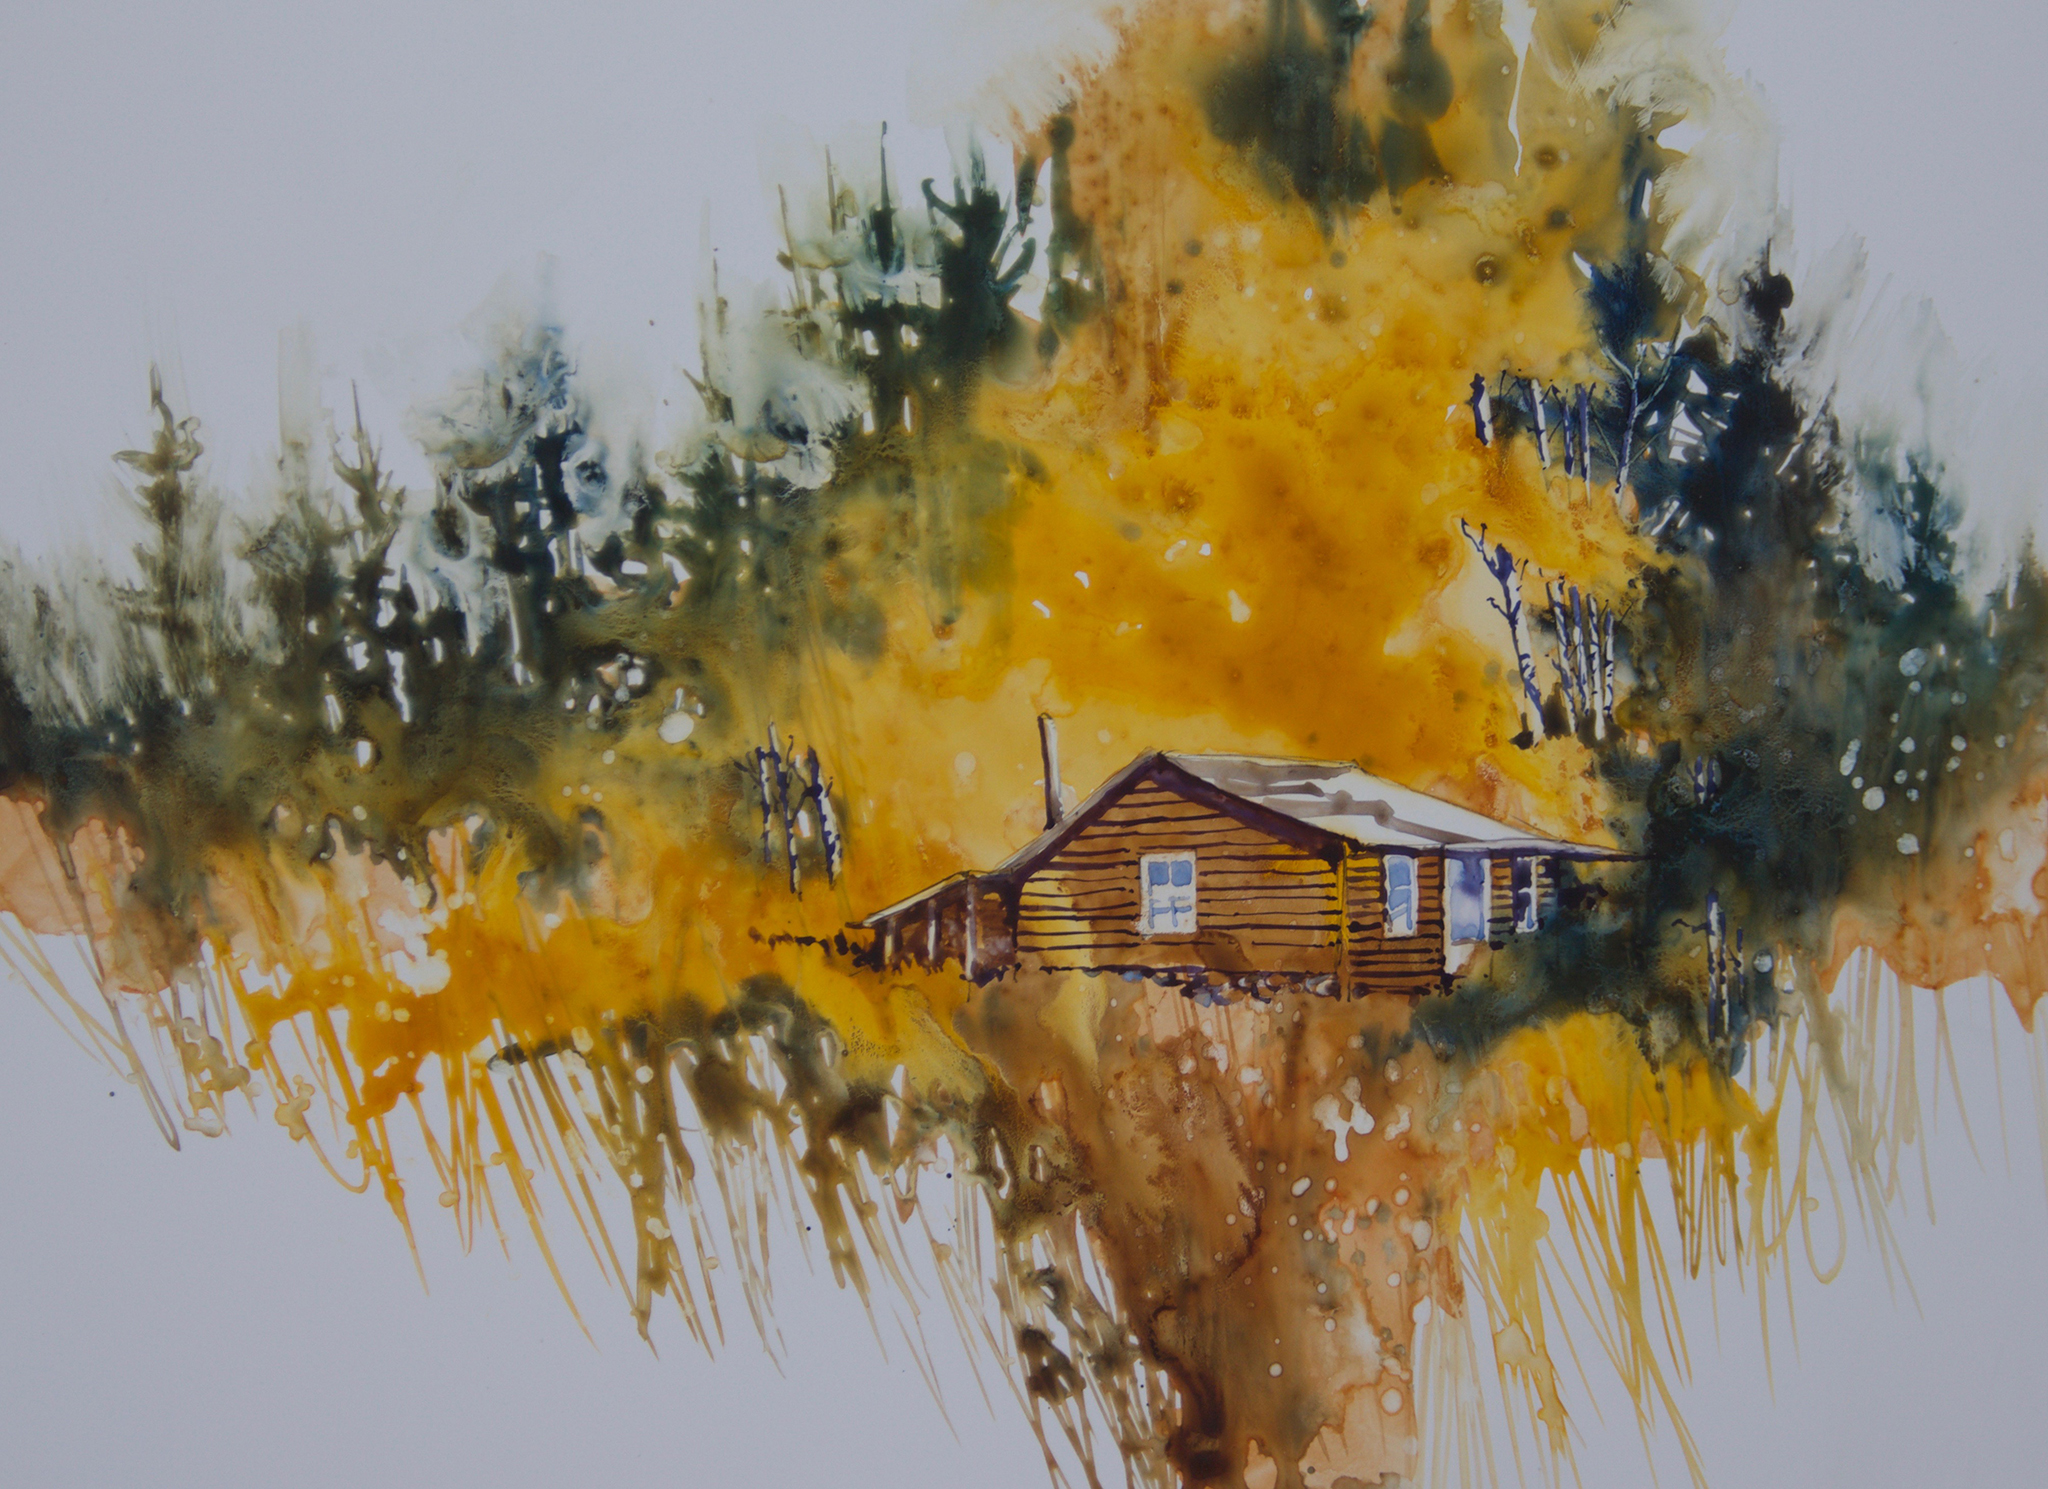 Painting #57 Autumn Cabin